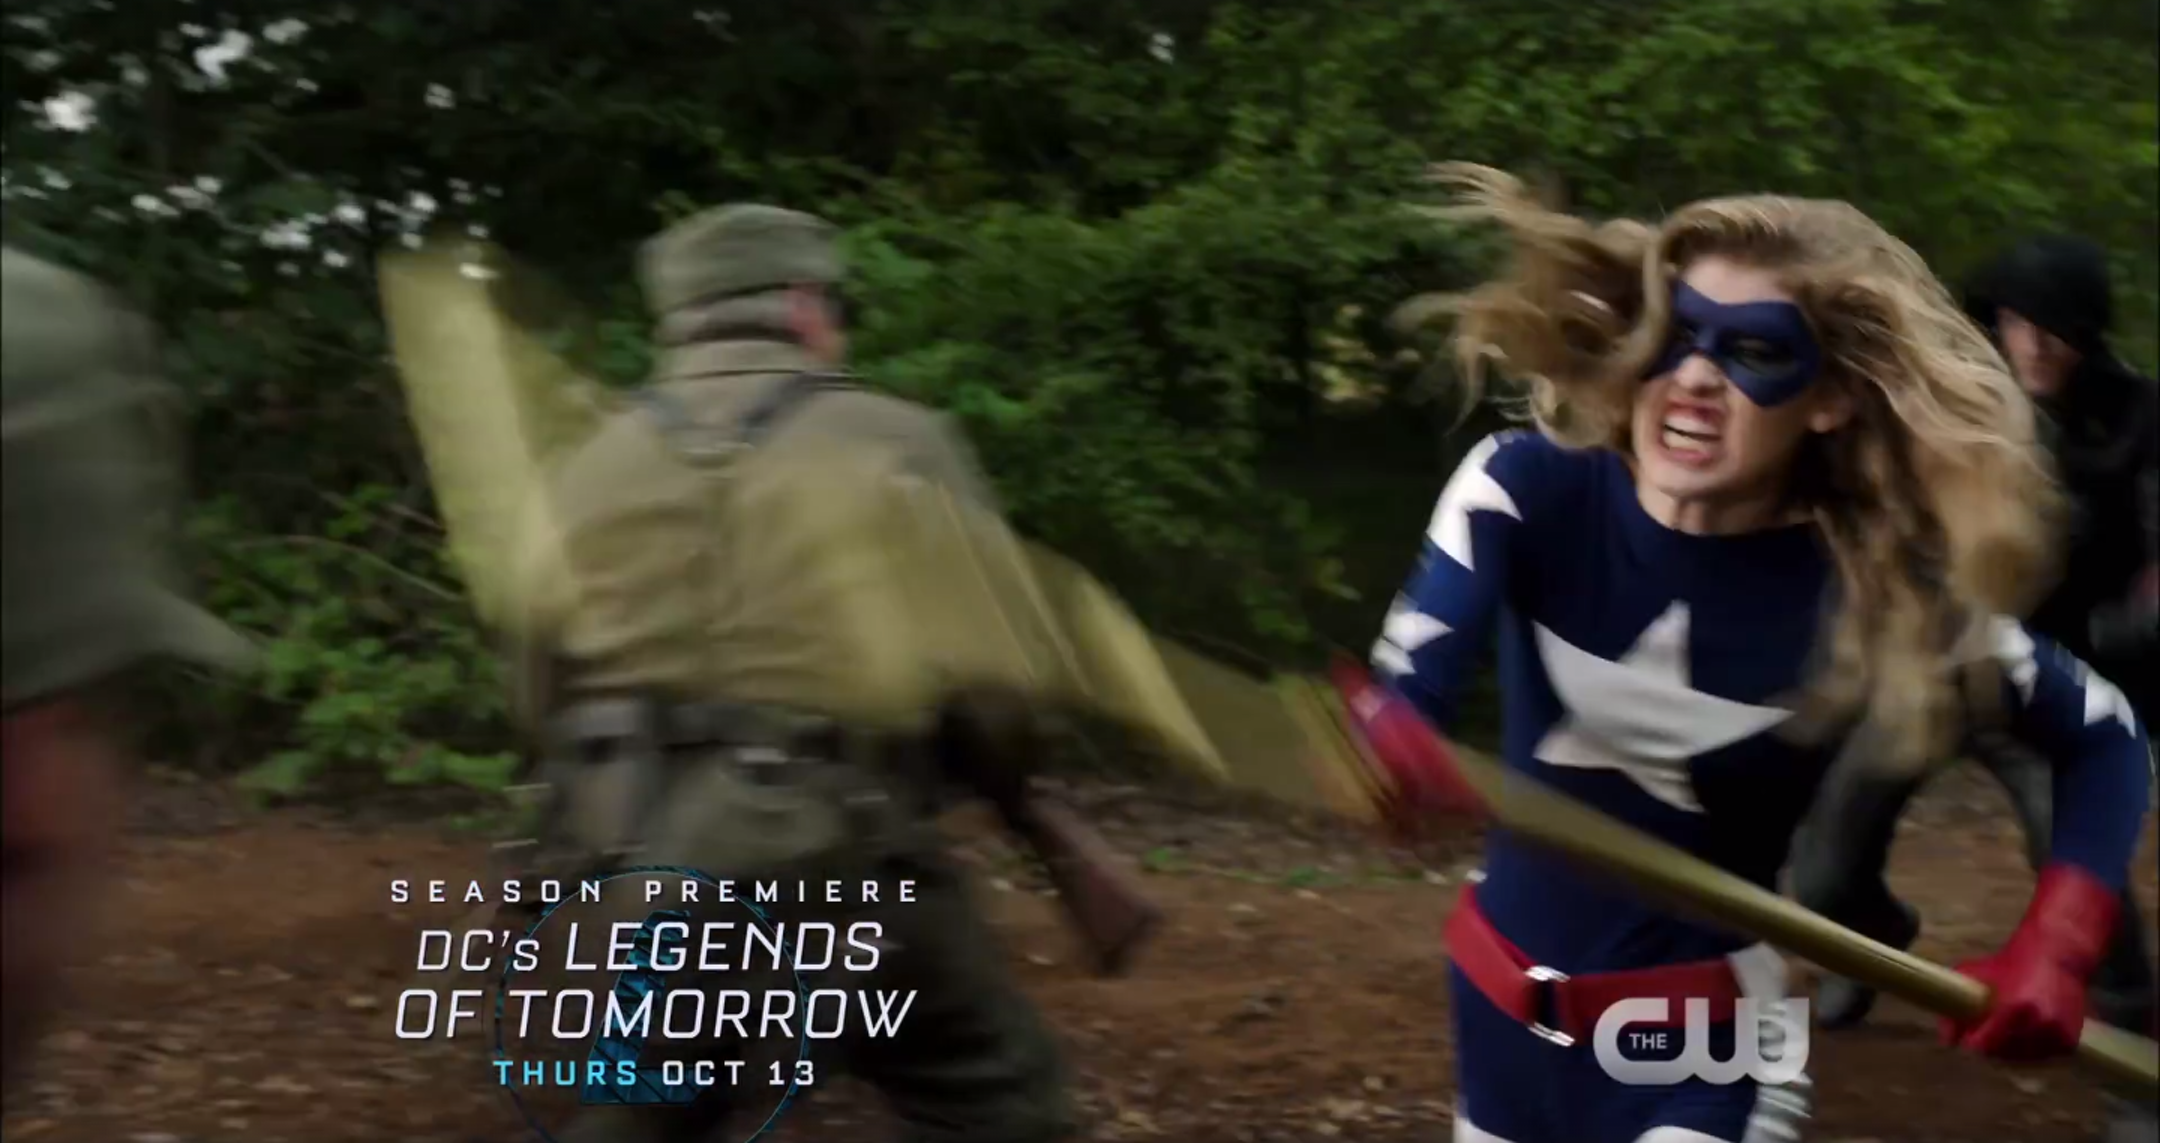 Stargirl, in DC's 'Legends of Tomorrow'